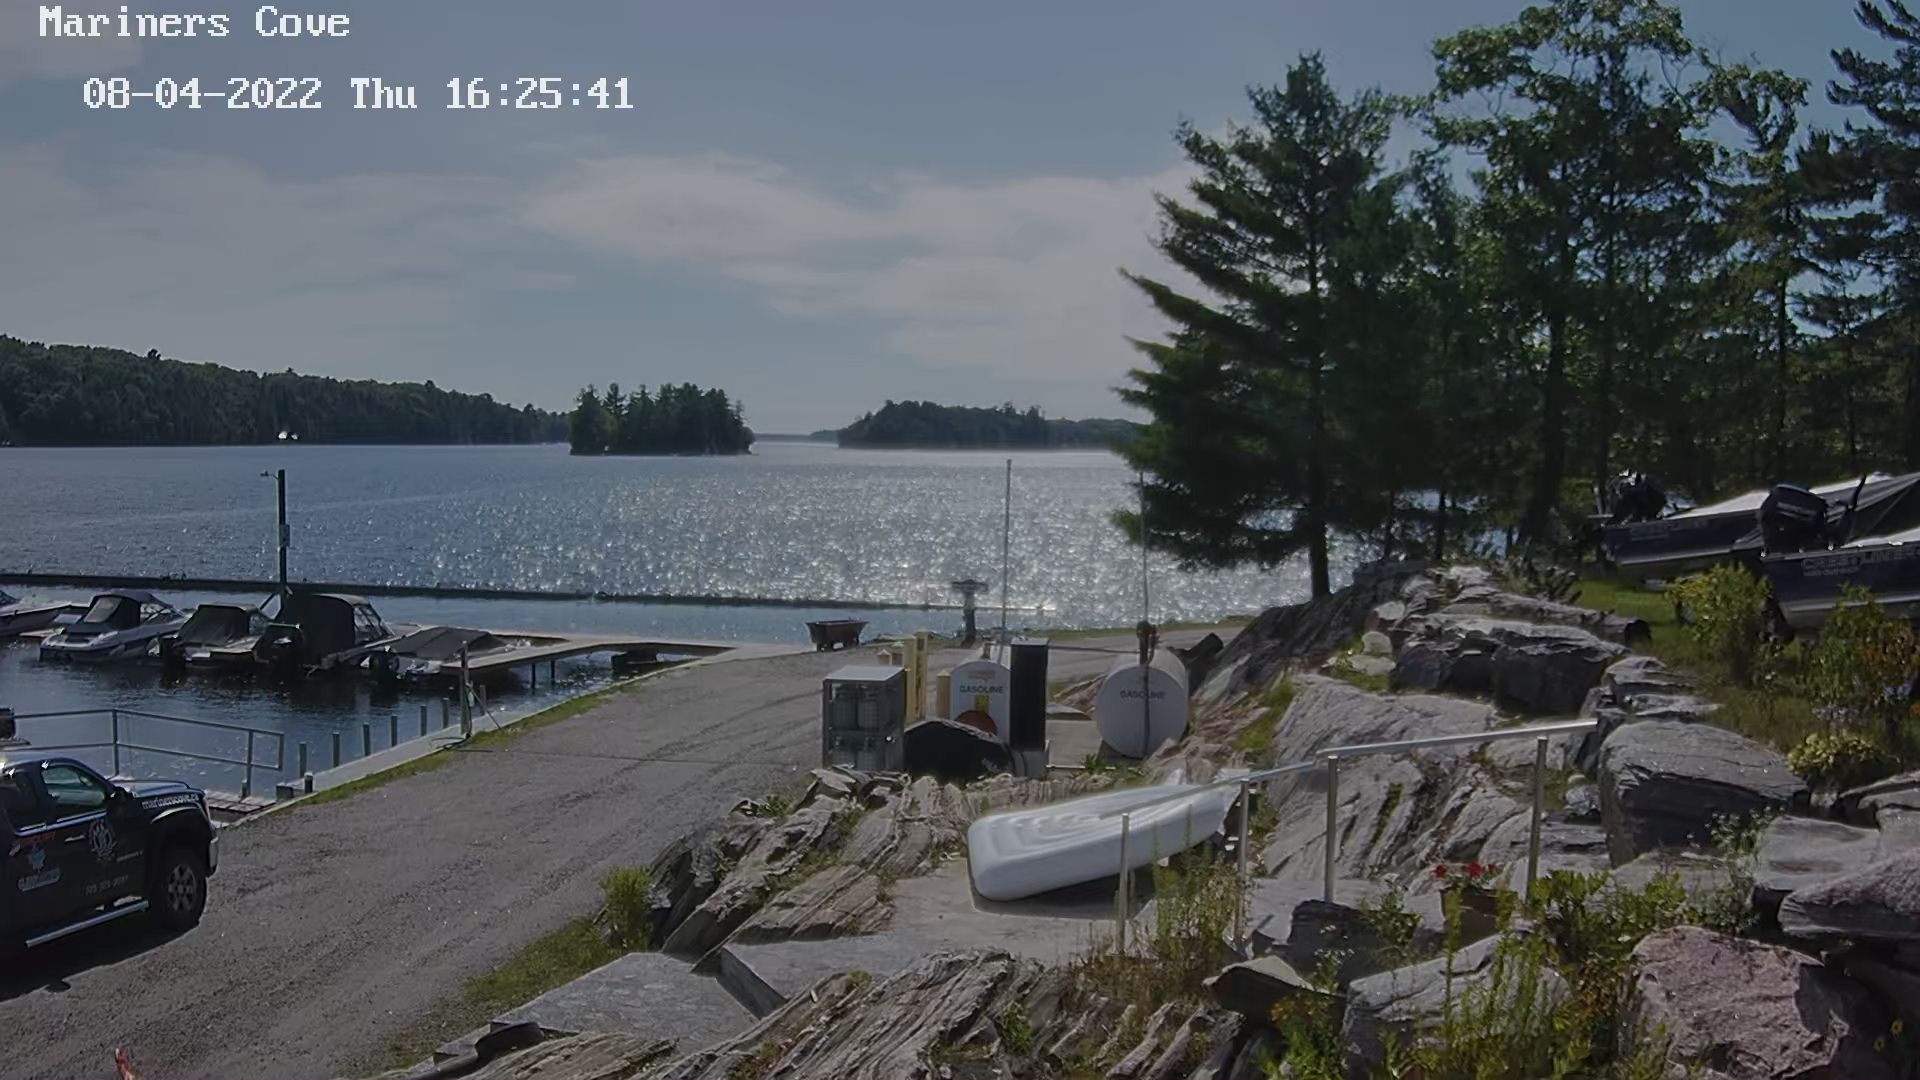 Mariners Cove Live Cam